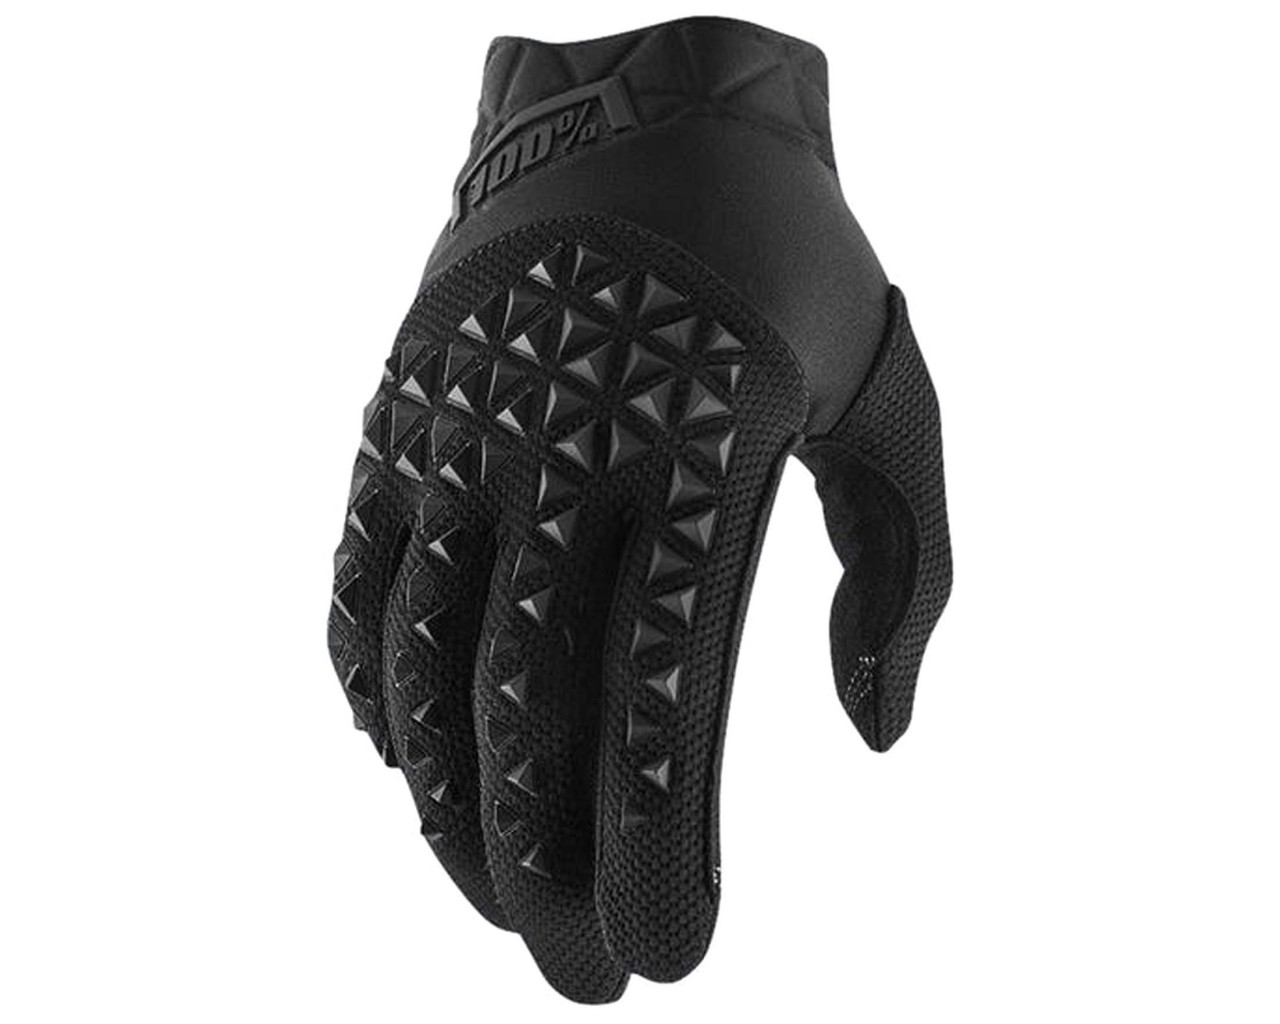 100% Airmatic Gloves | black-charcoal